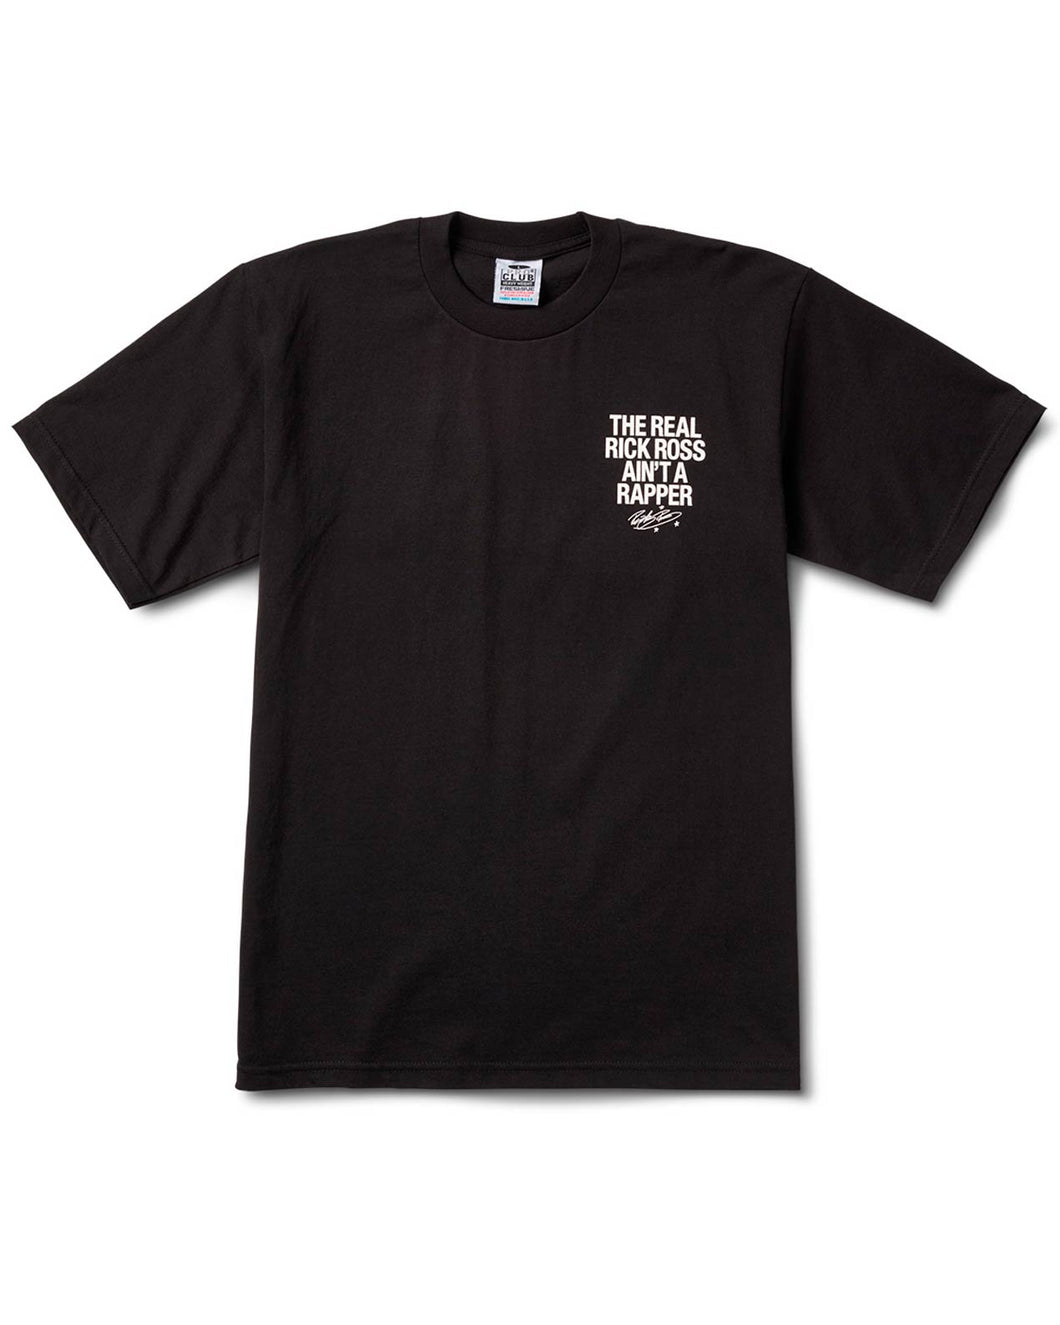 Pro Club Freeway Rick Tee Black